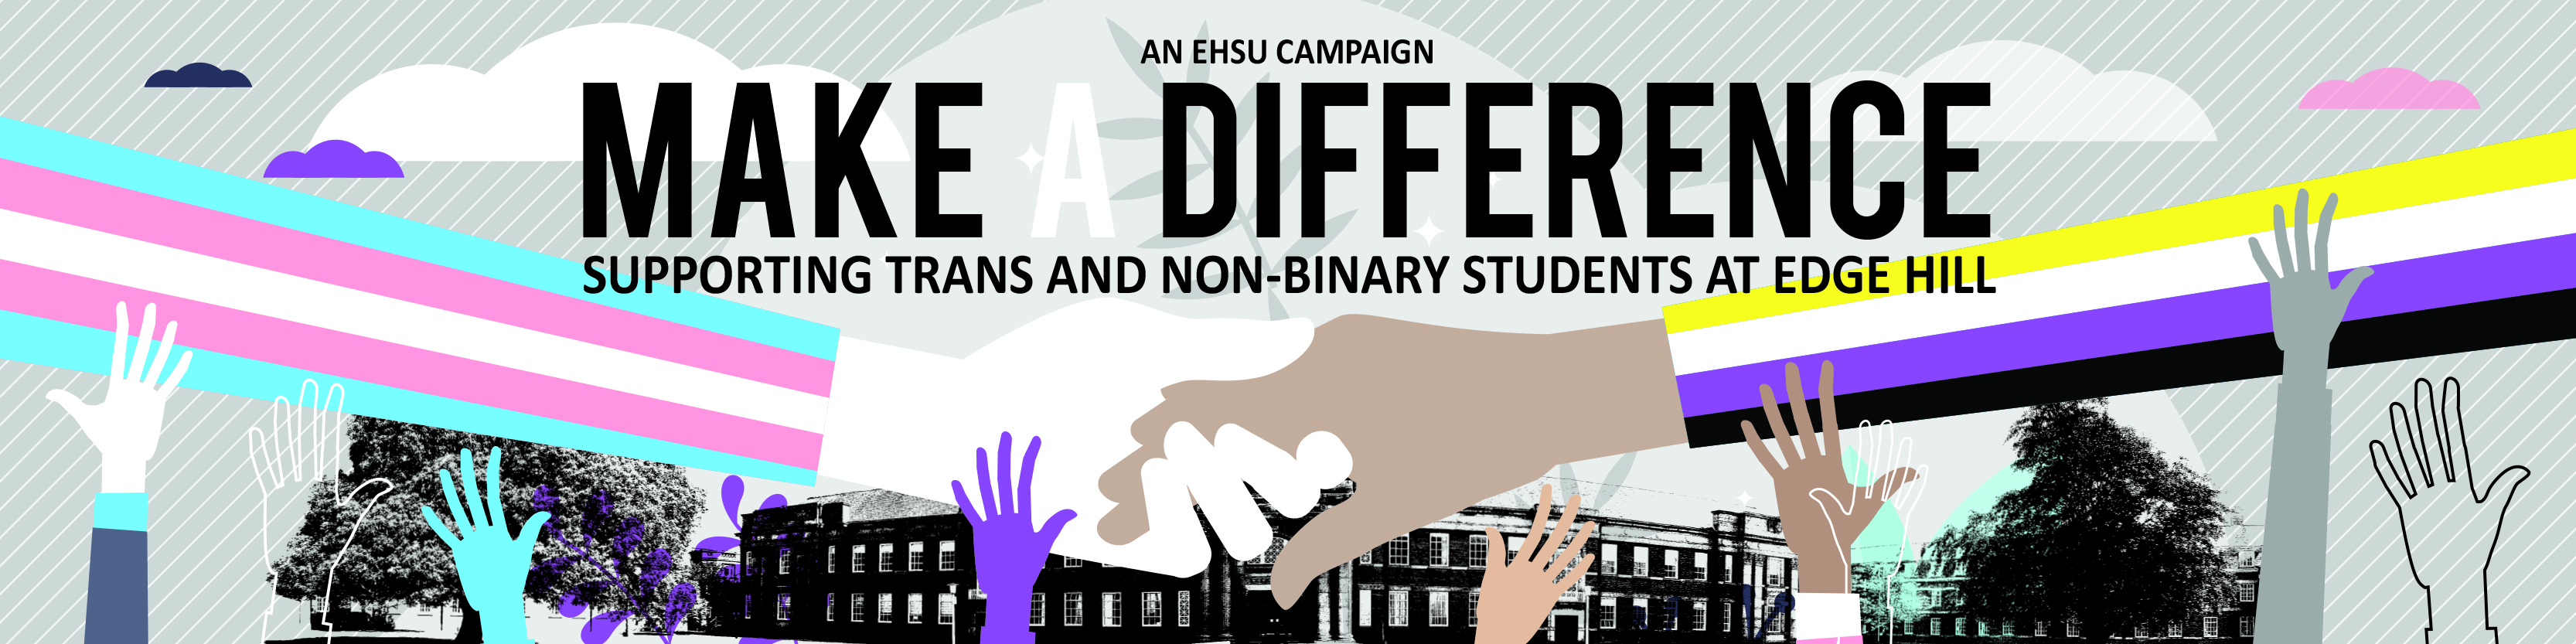 Make A Difference: Web Header Image